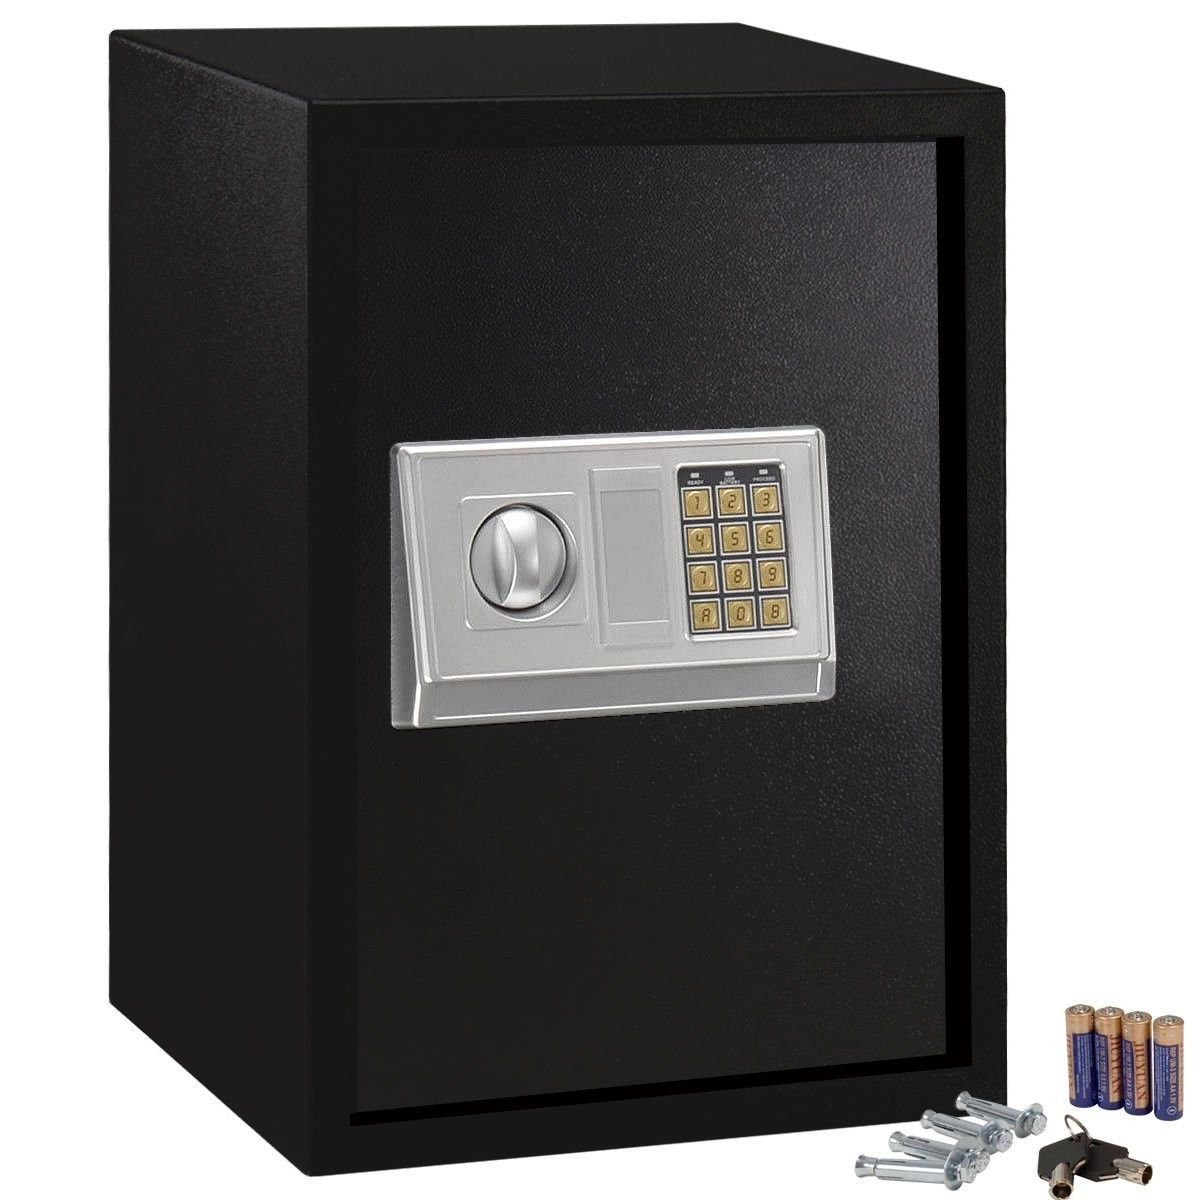 GHP Home Office Hotel Gun Large Digital Electronic Safe Box w Keypad Lock Security